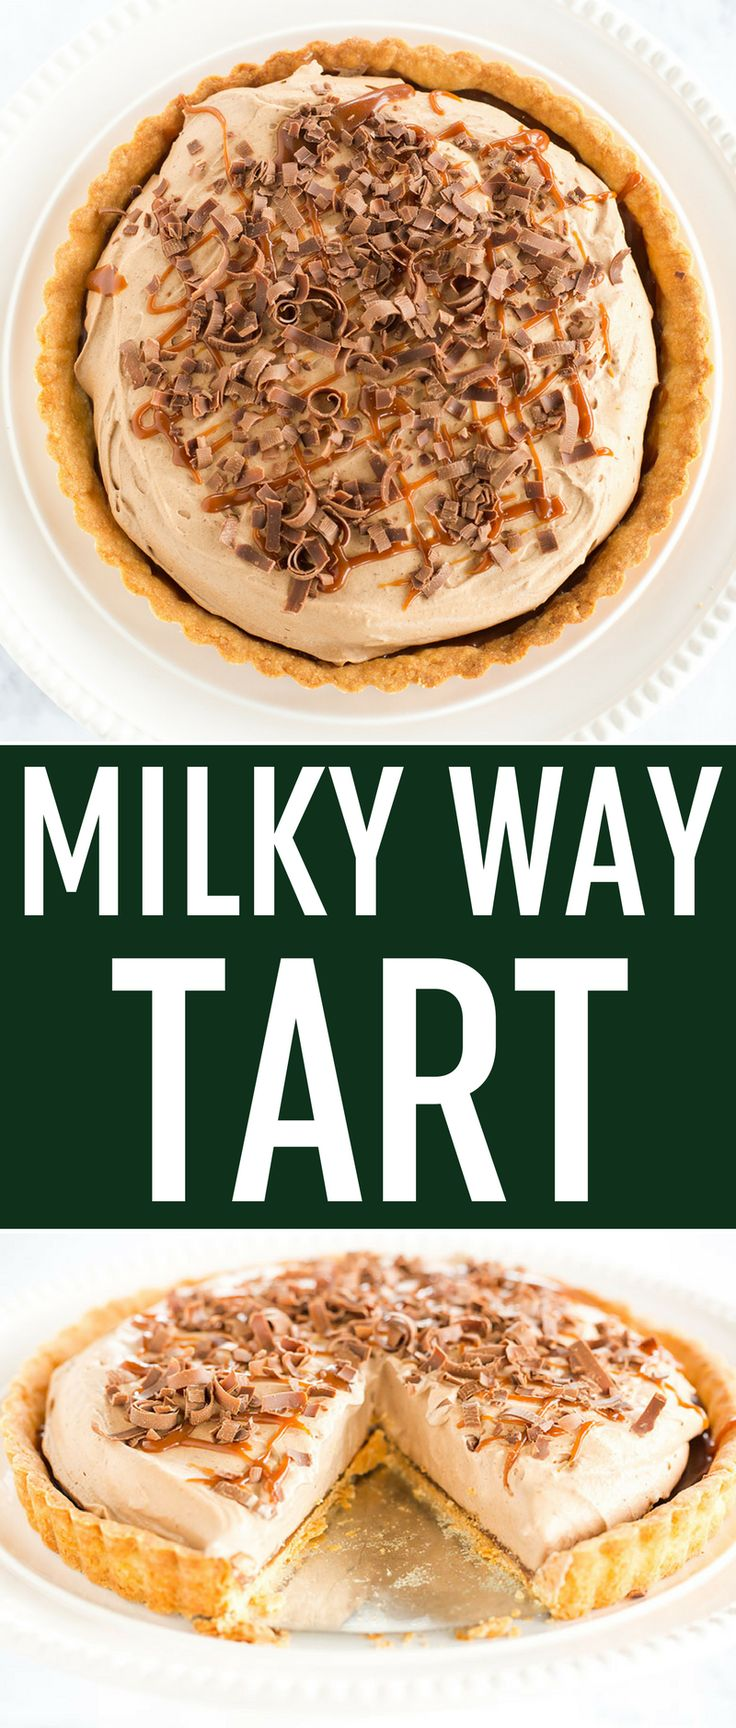 Milky Way Tart - A pate sucree crust is filled with caramel sauce and whipped milk chocolate mousse, then topped with a drizzle of caramel and chocolate curls. via @browneyedbaker